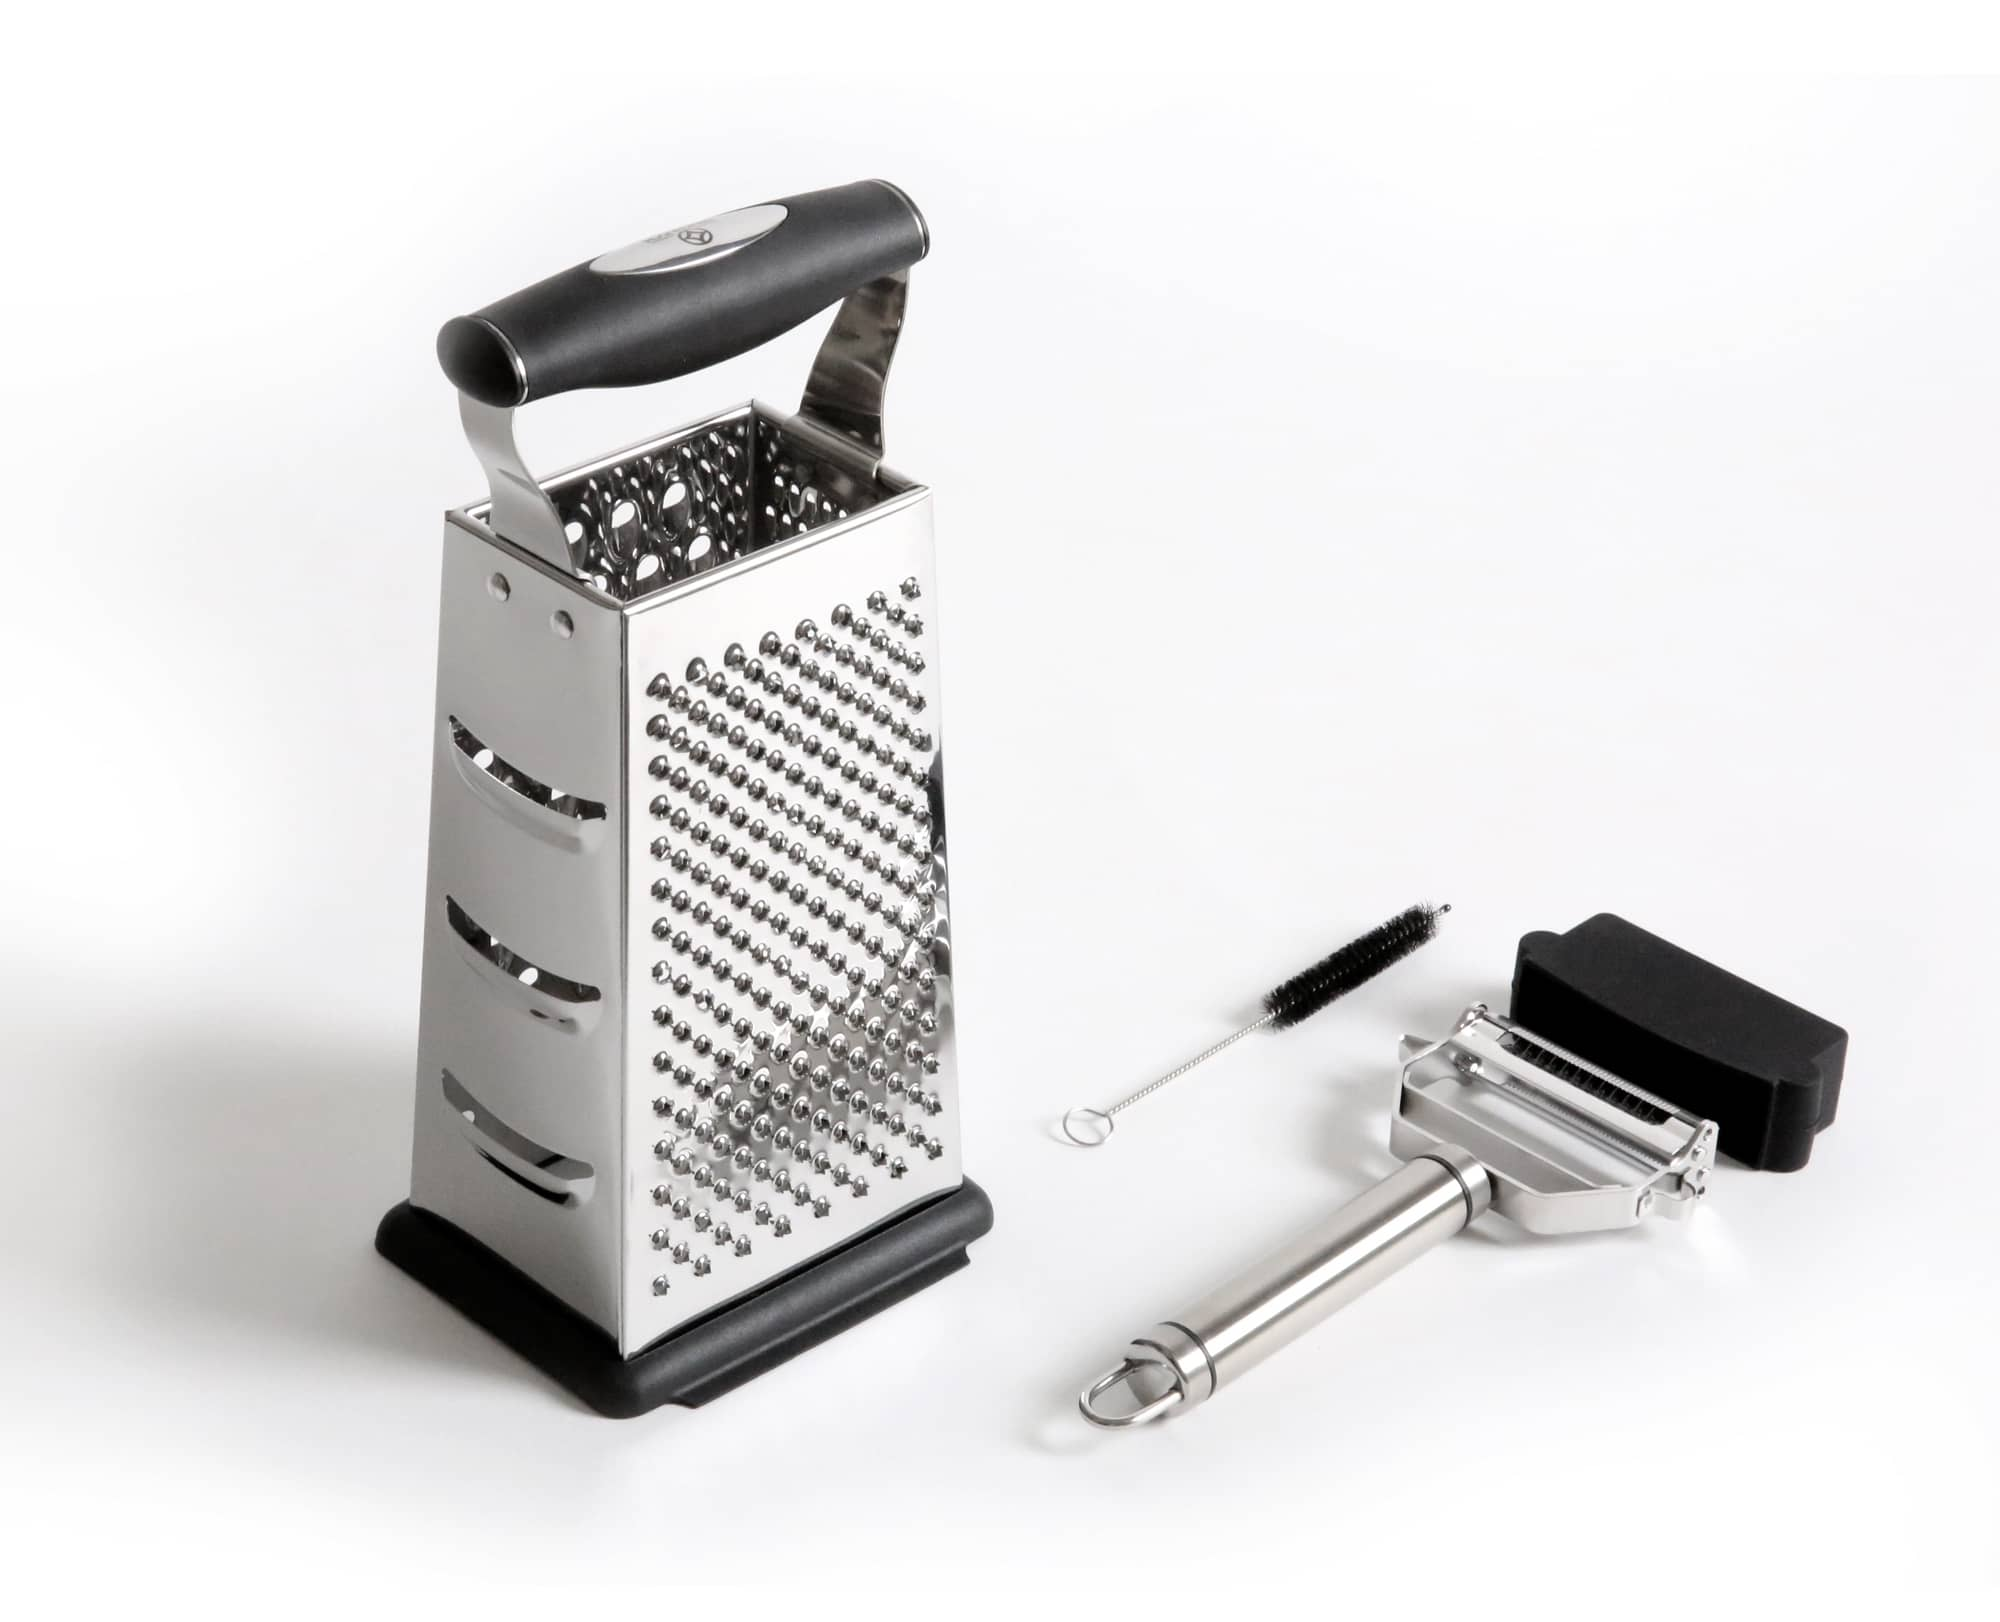 Benchusch 4 Sided Grater Box & Peeler Set, black color with stainless steel blade, Non-Slip Base and Ergonomic Handle